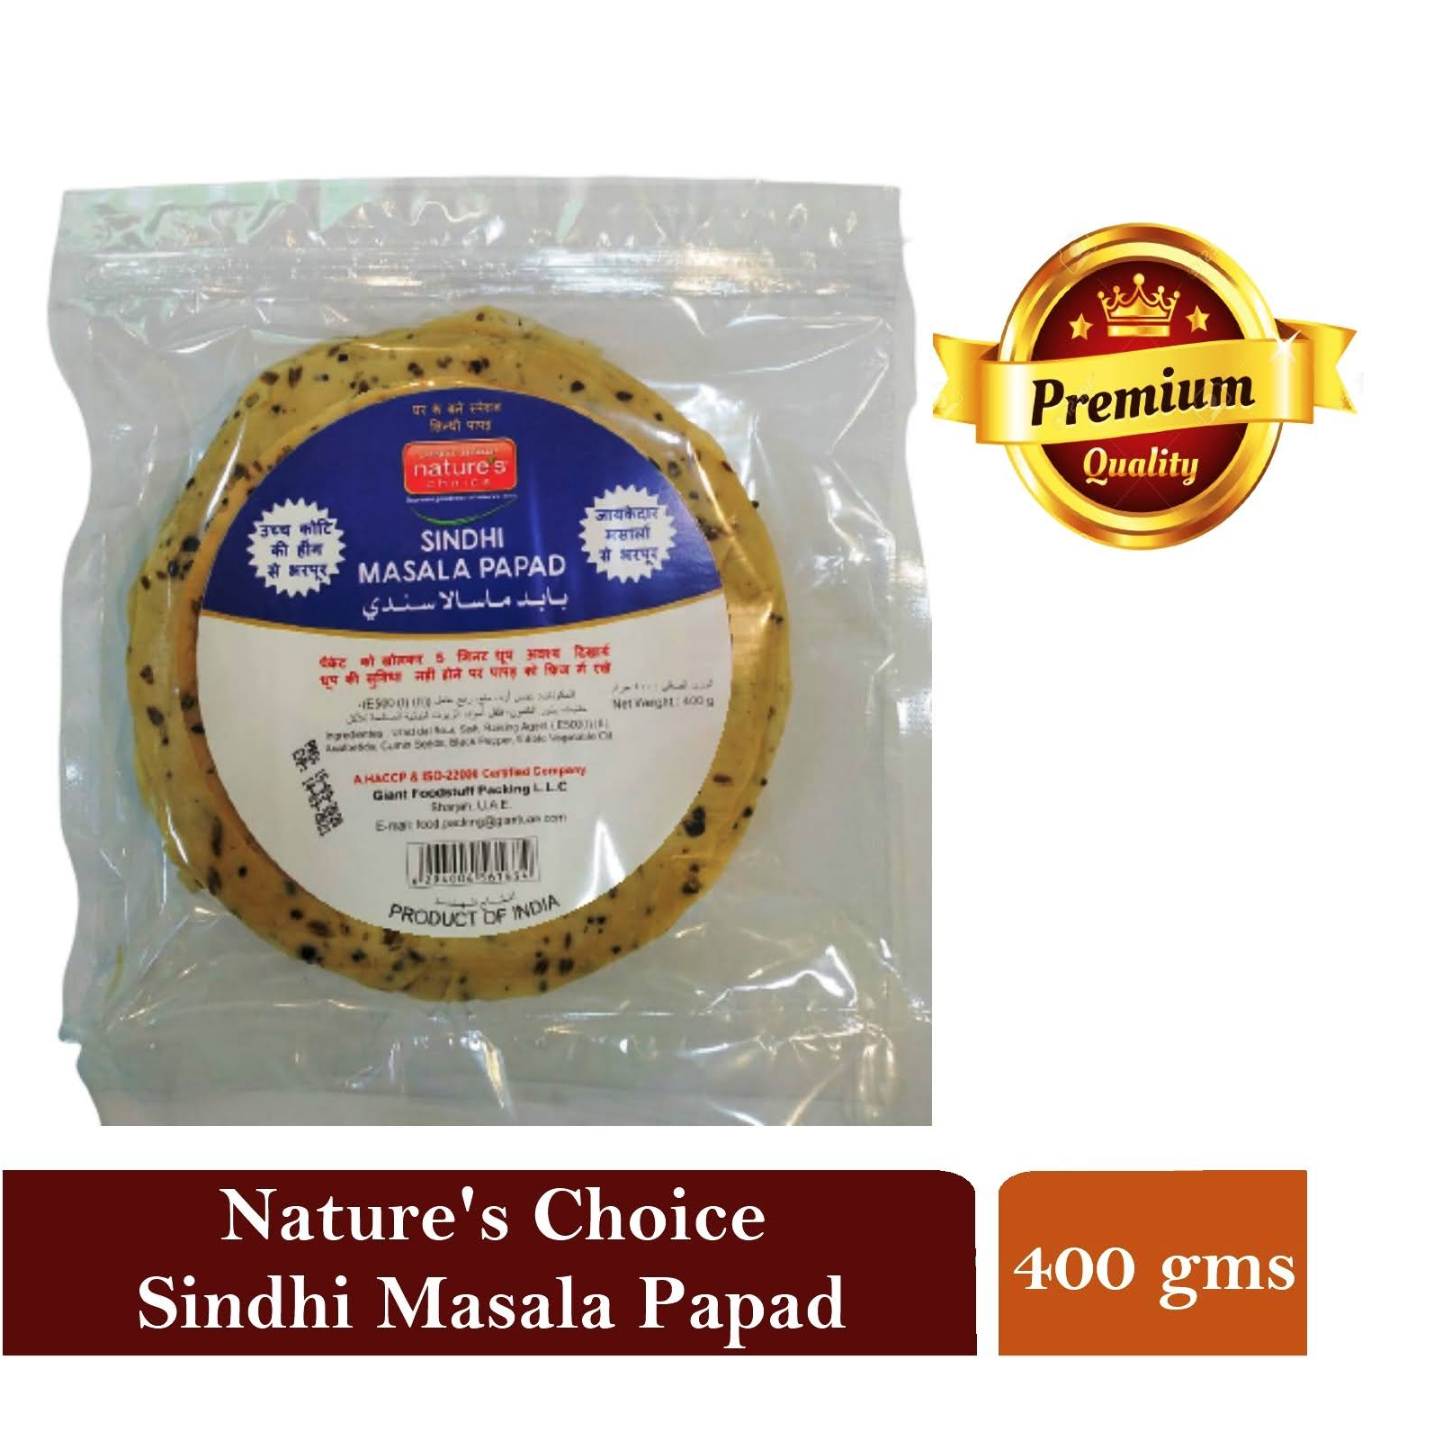 NATURE'S CHOICE PREMIUM QUALITY MASALA PAPAD 400G